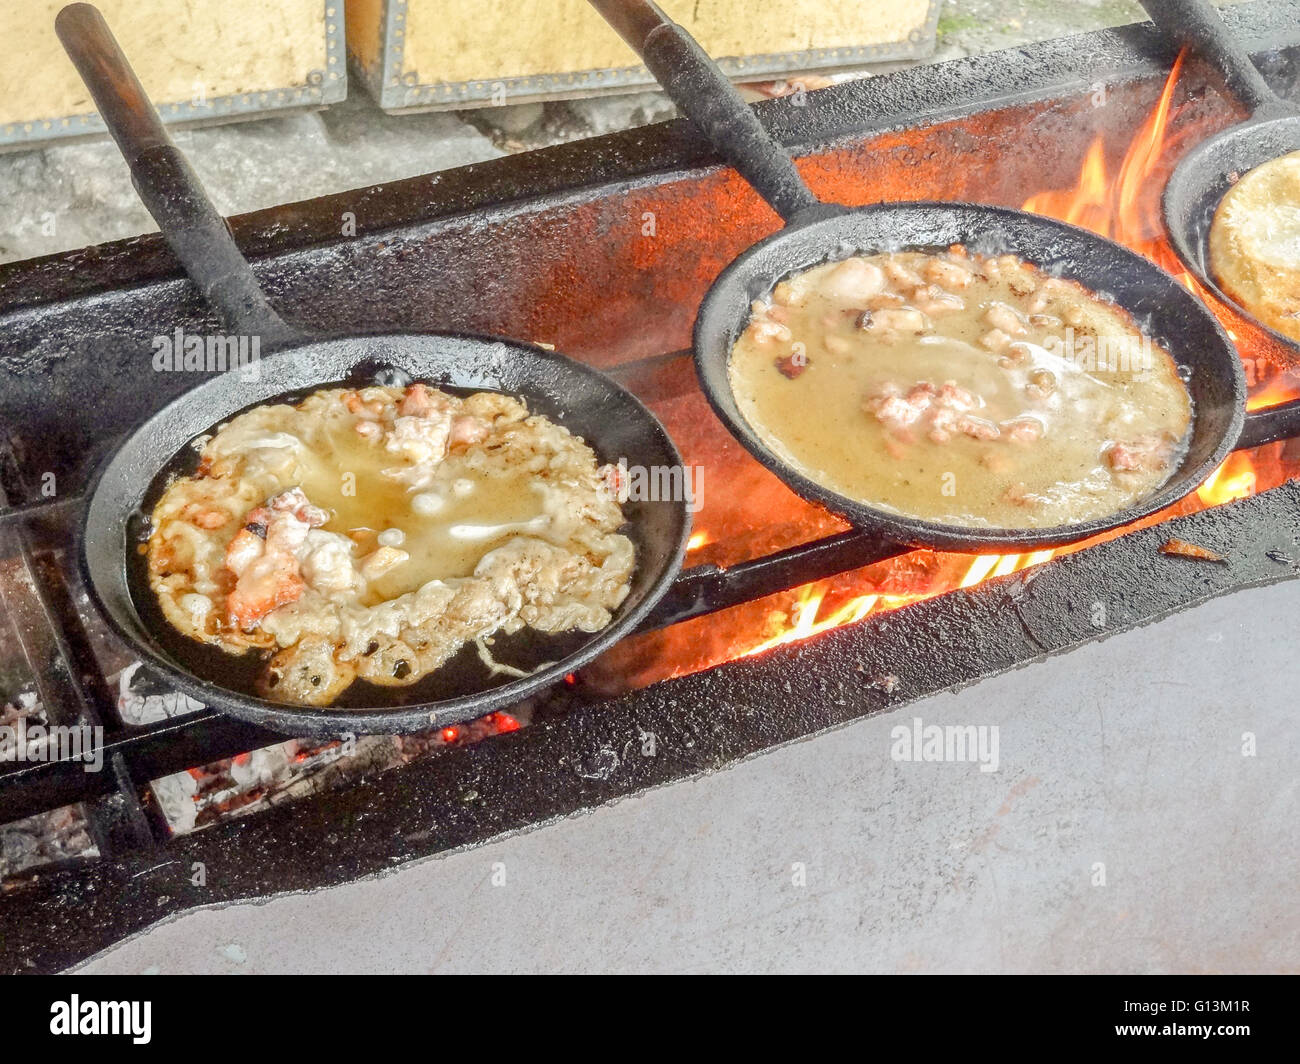 rustic stove with pans including a dish in Sweden - Stock Image